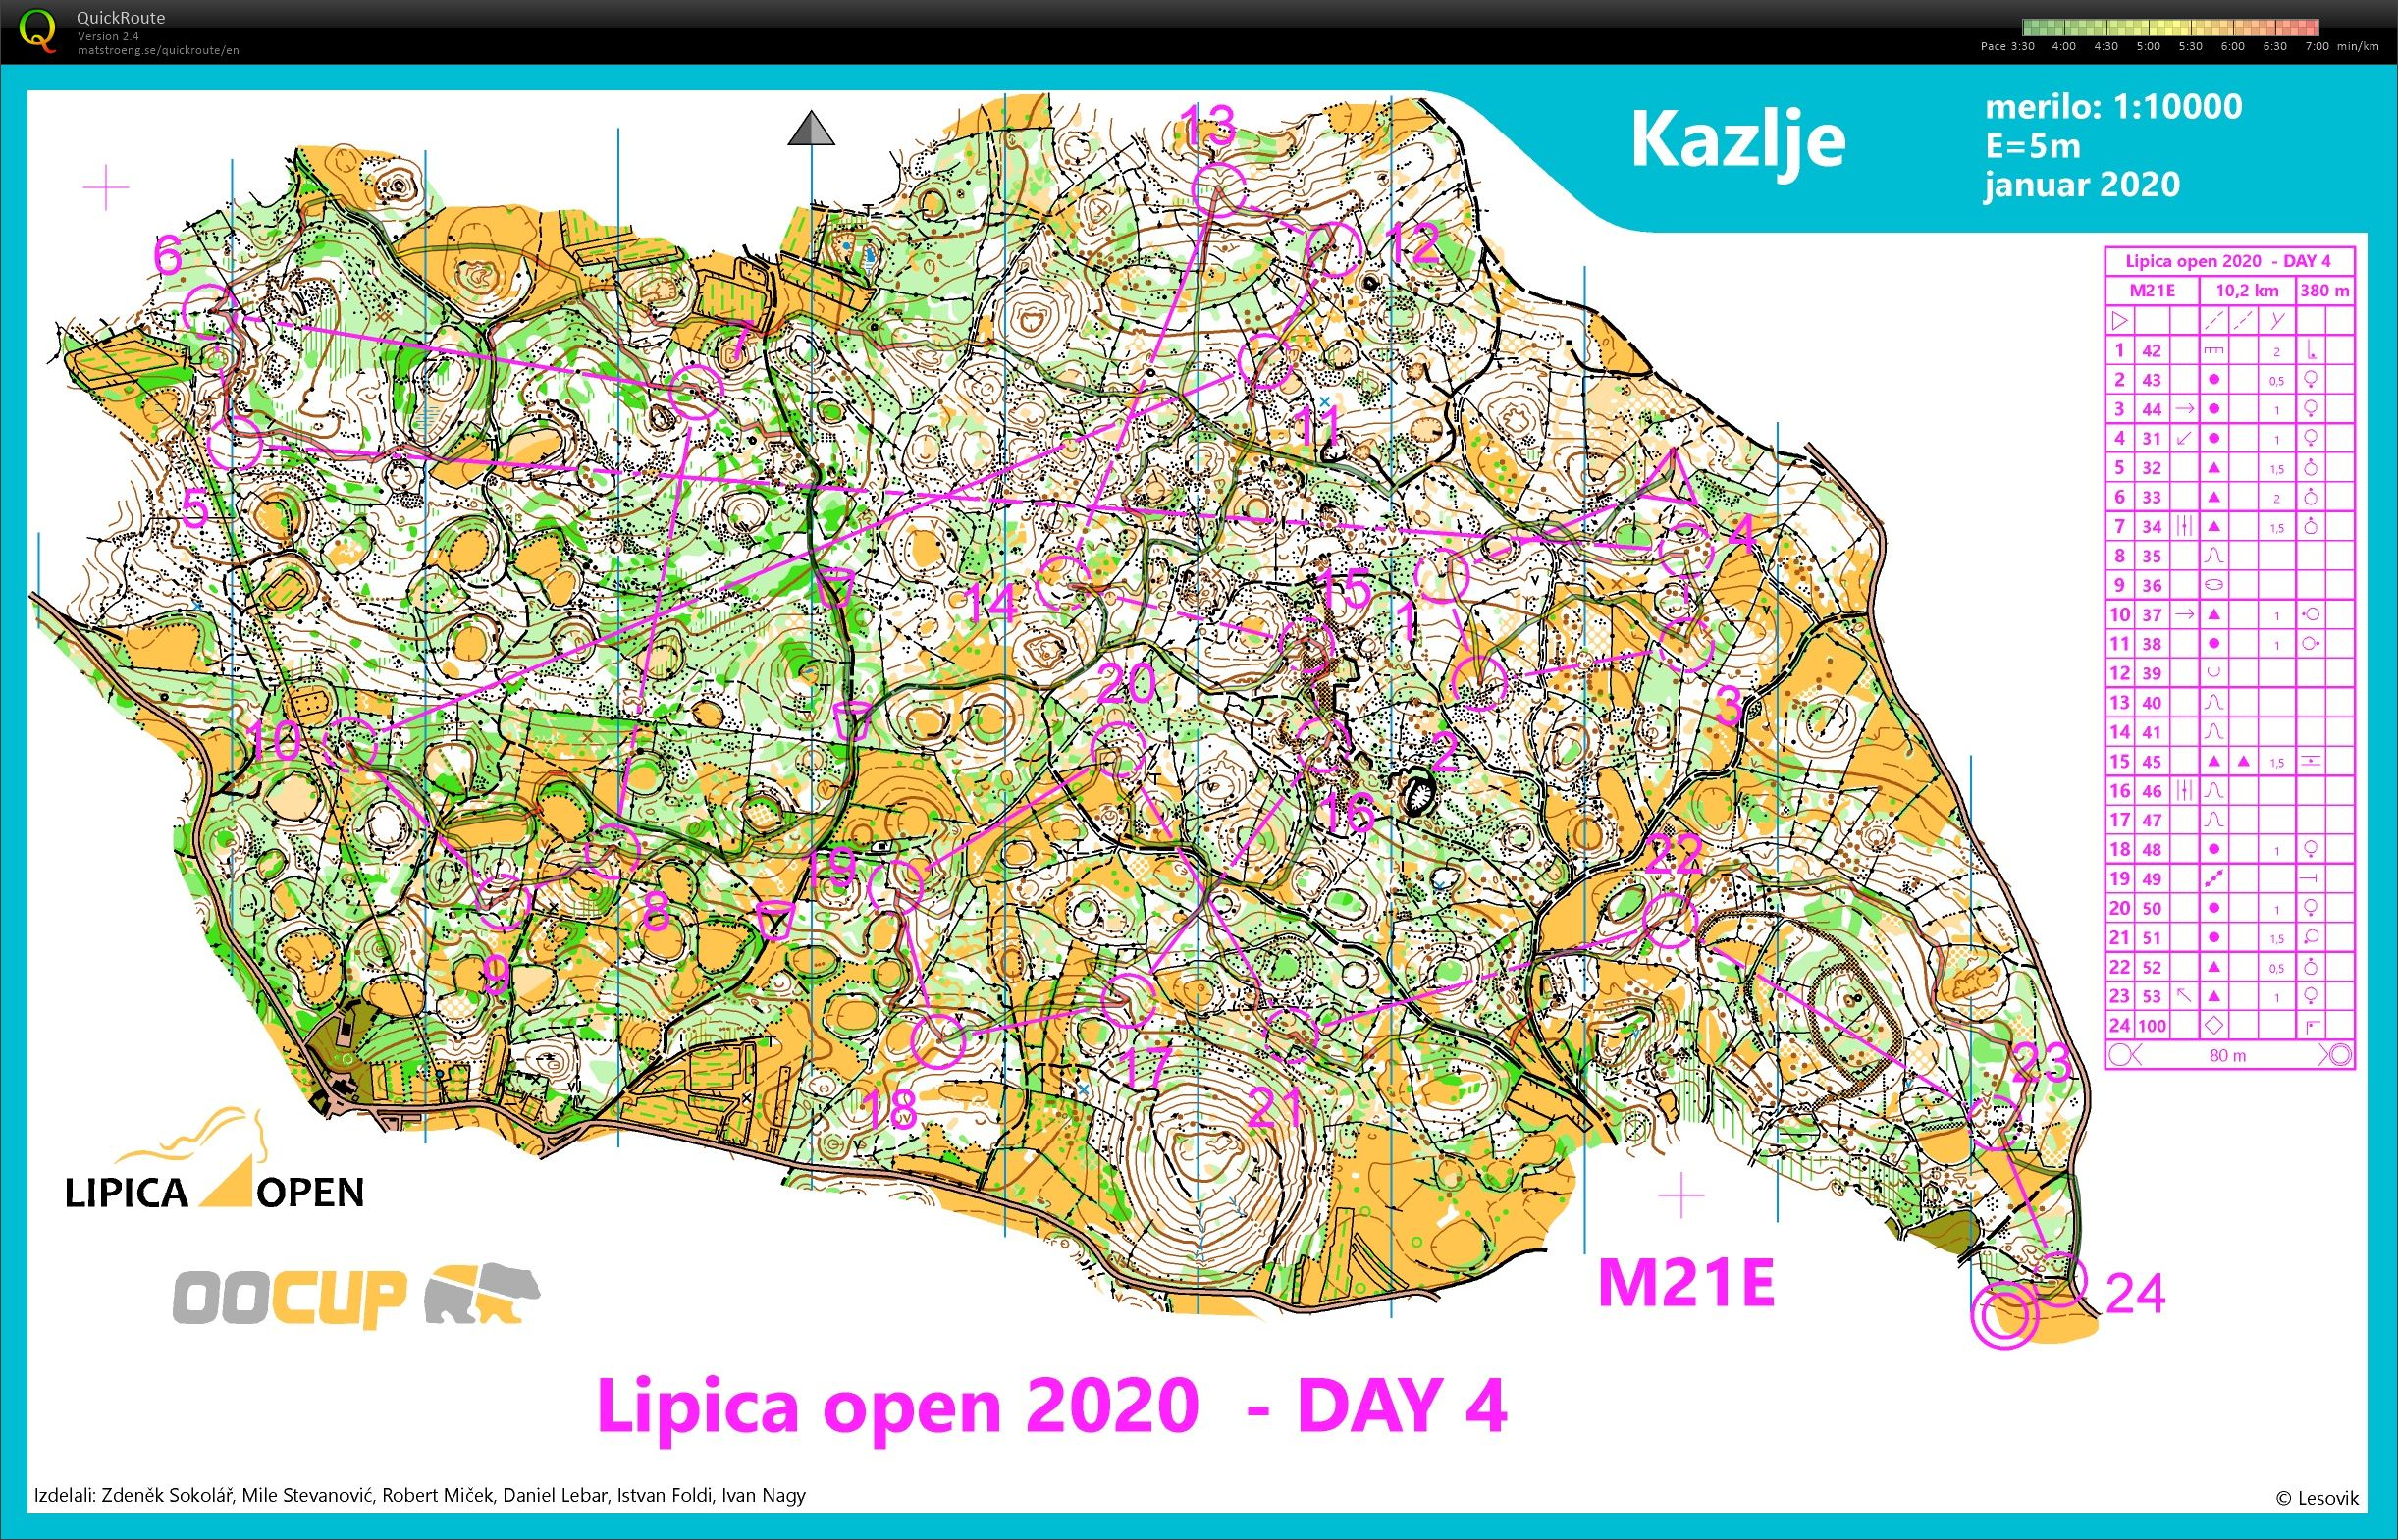 Lipica Open 2020 - day4 (2020-03-10)